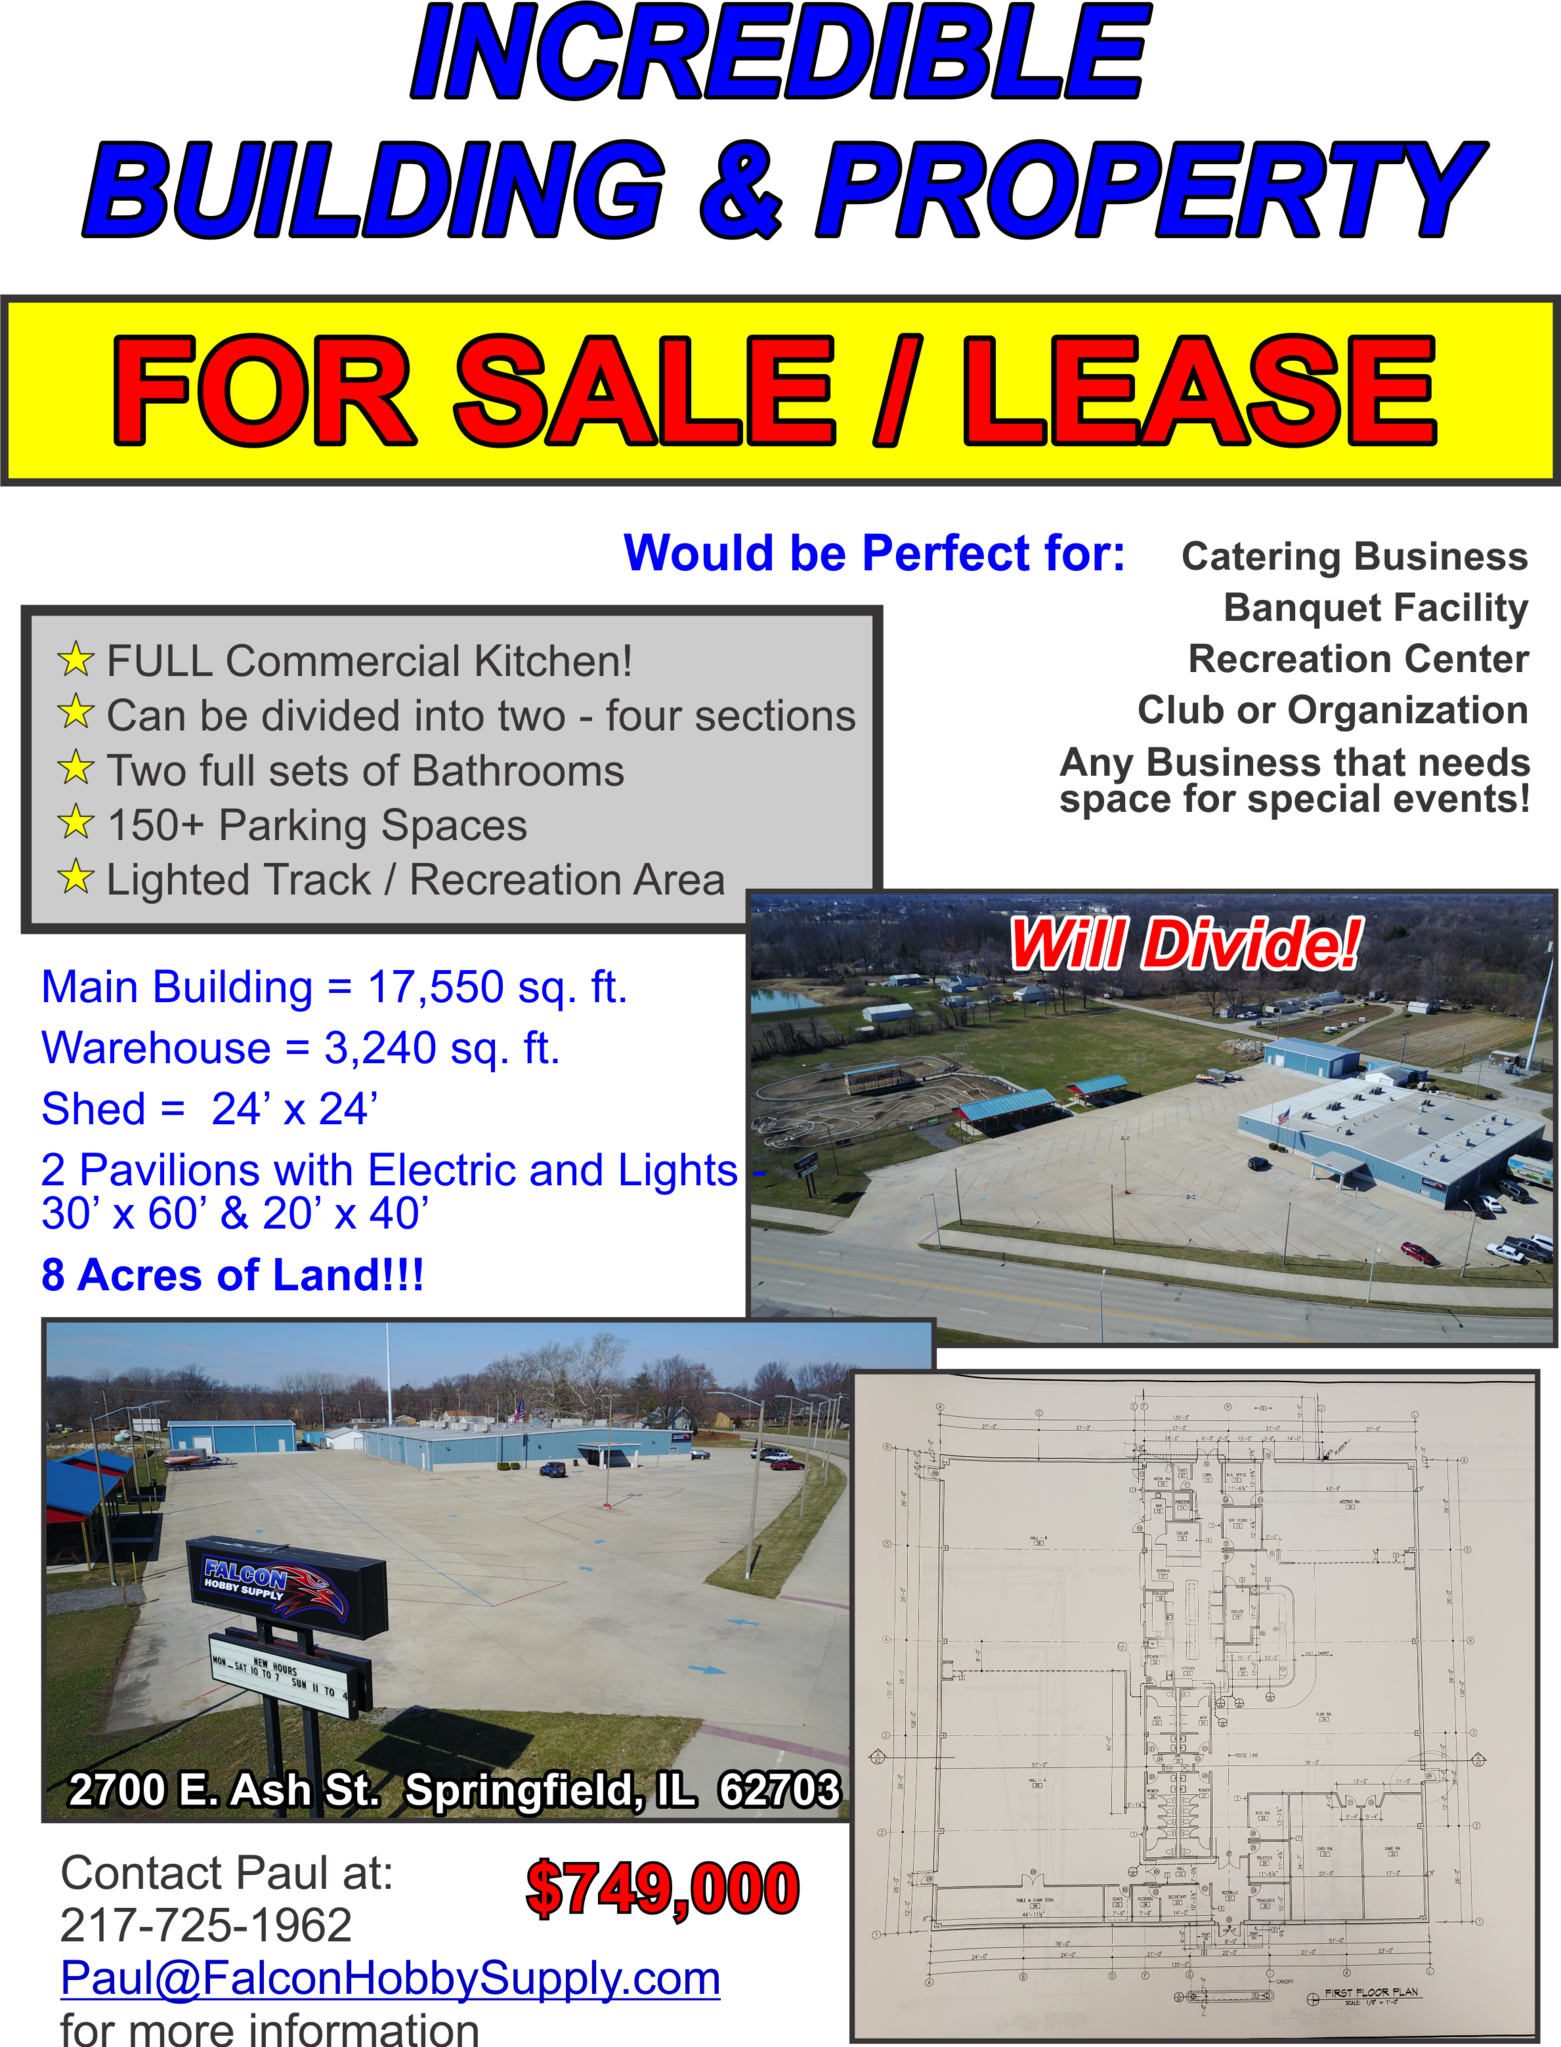 Awesome Building for Sale or Lease